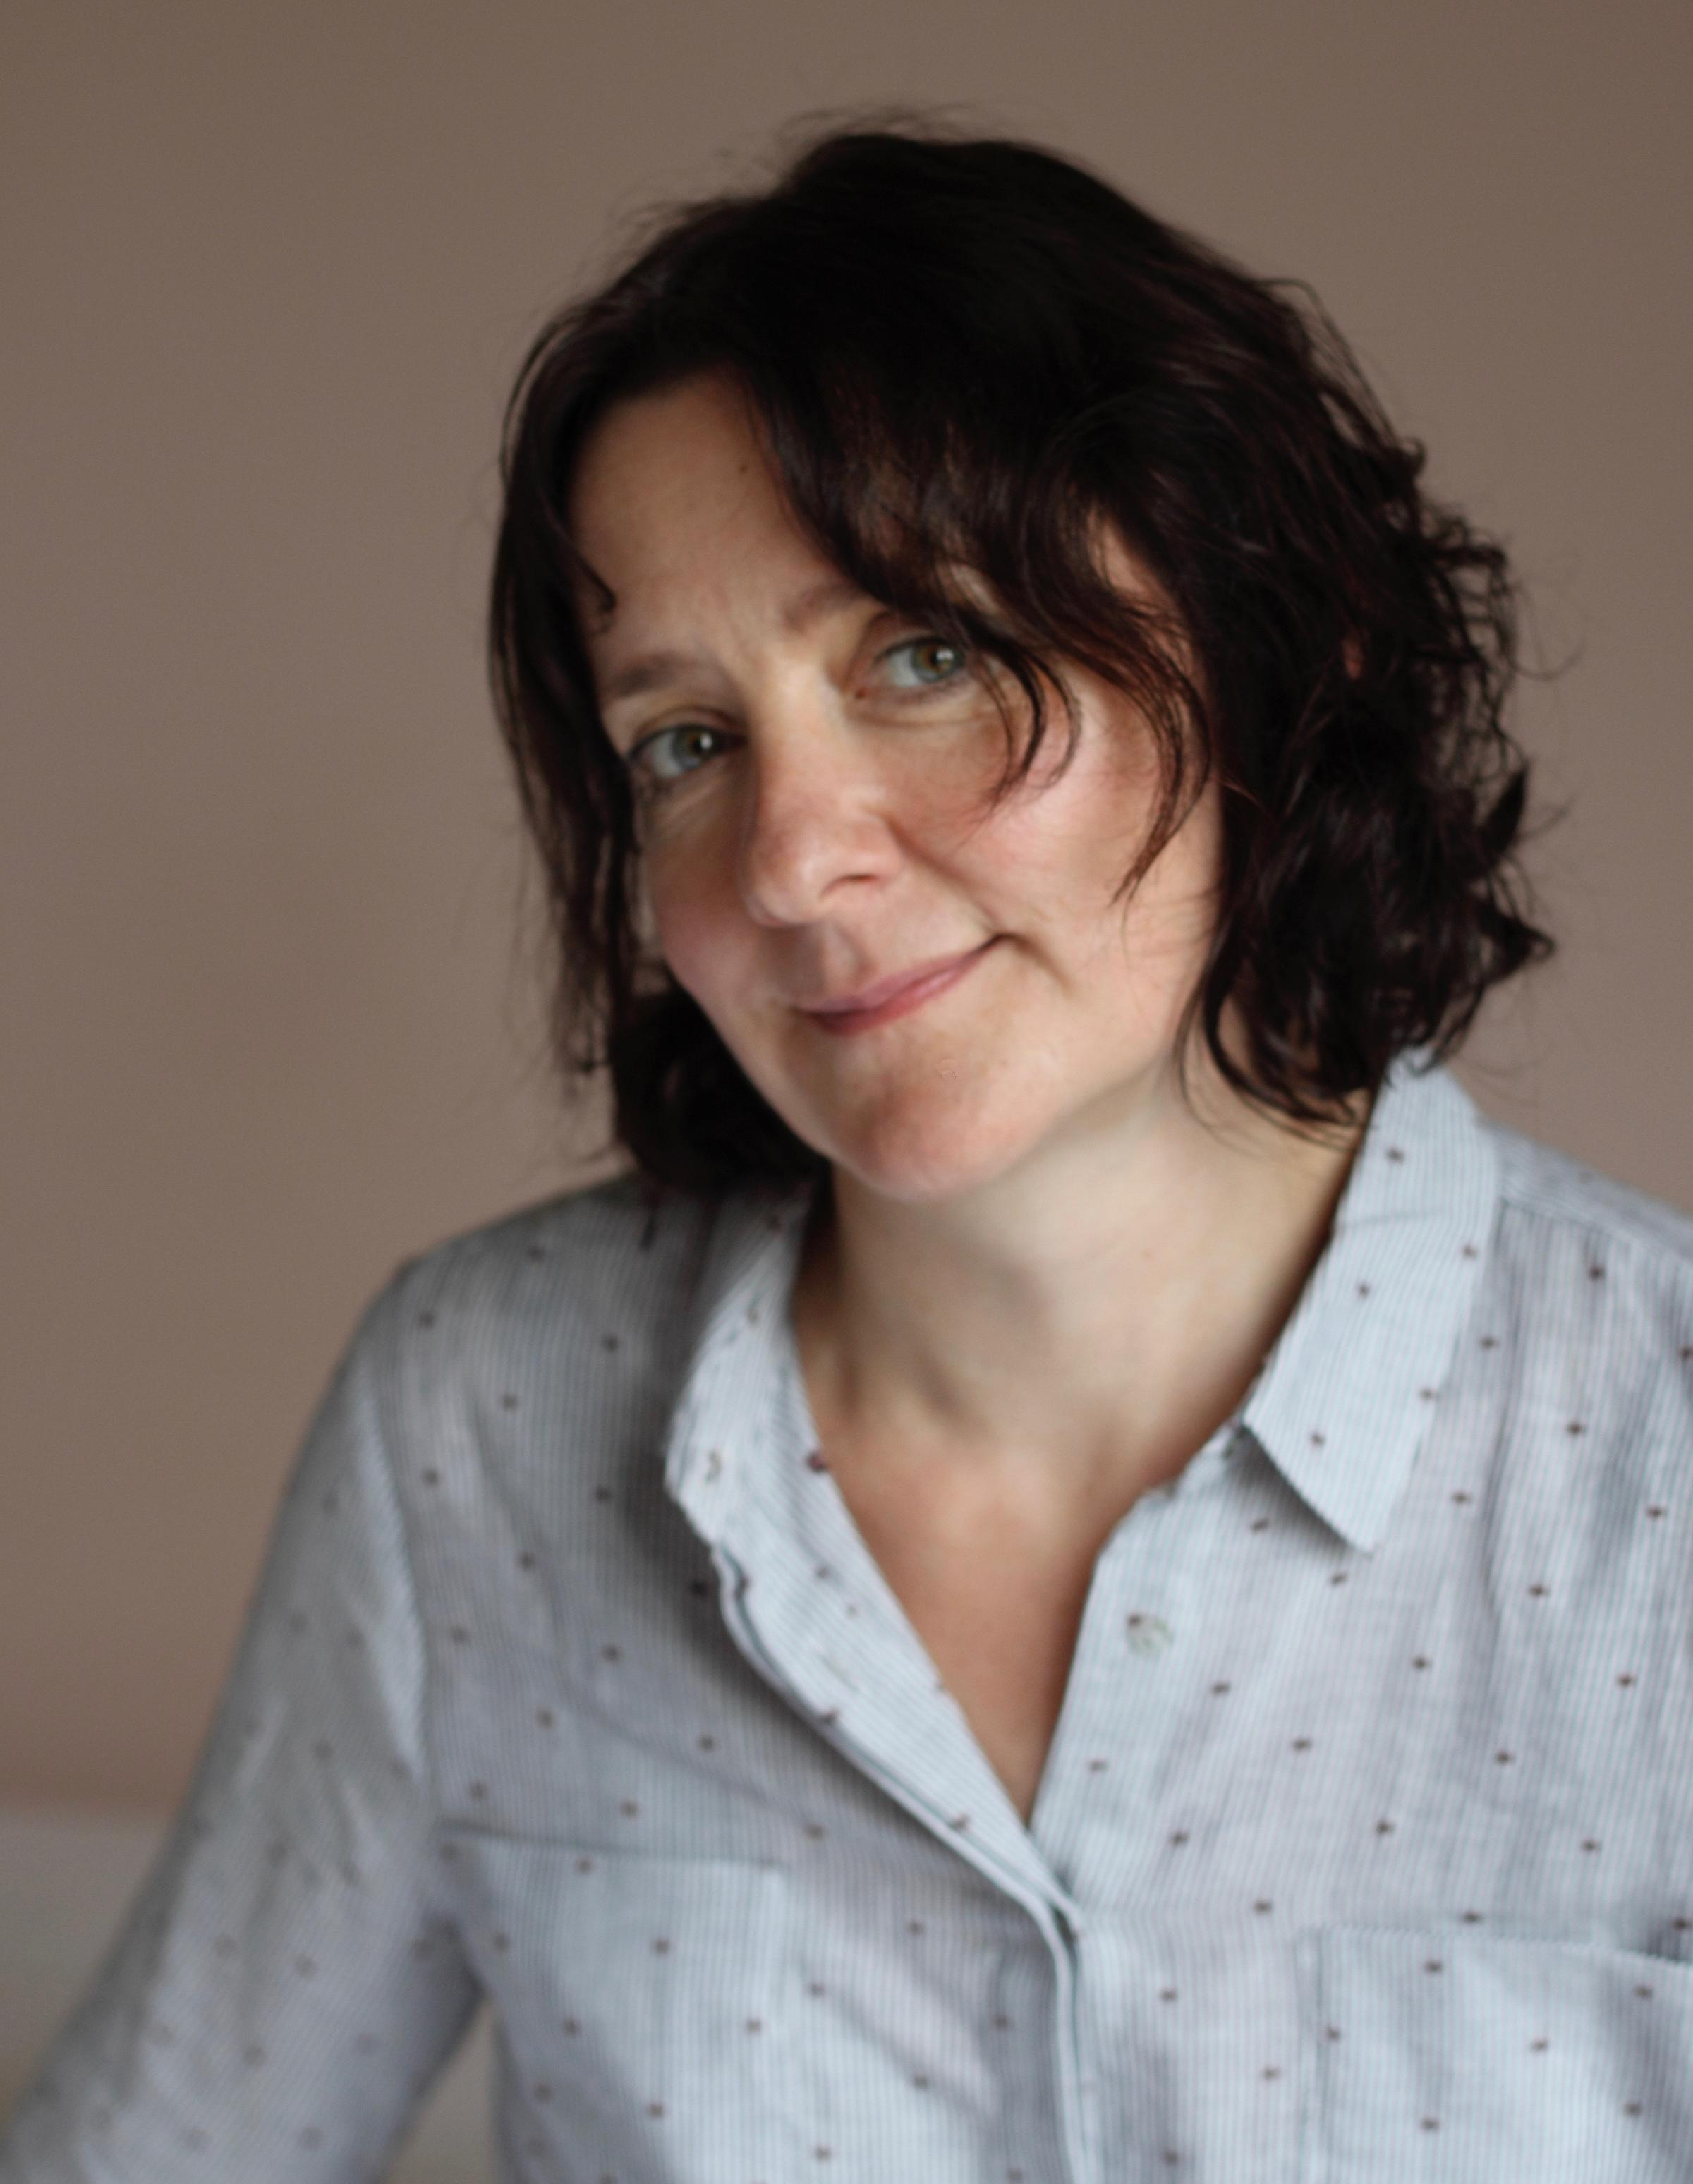 Colette Bryce appointed as 2019 Poet in Residence for Ilkley Literature Festival